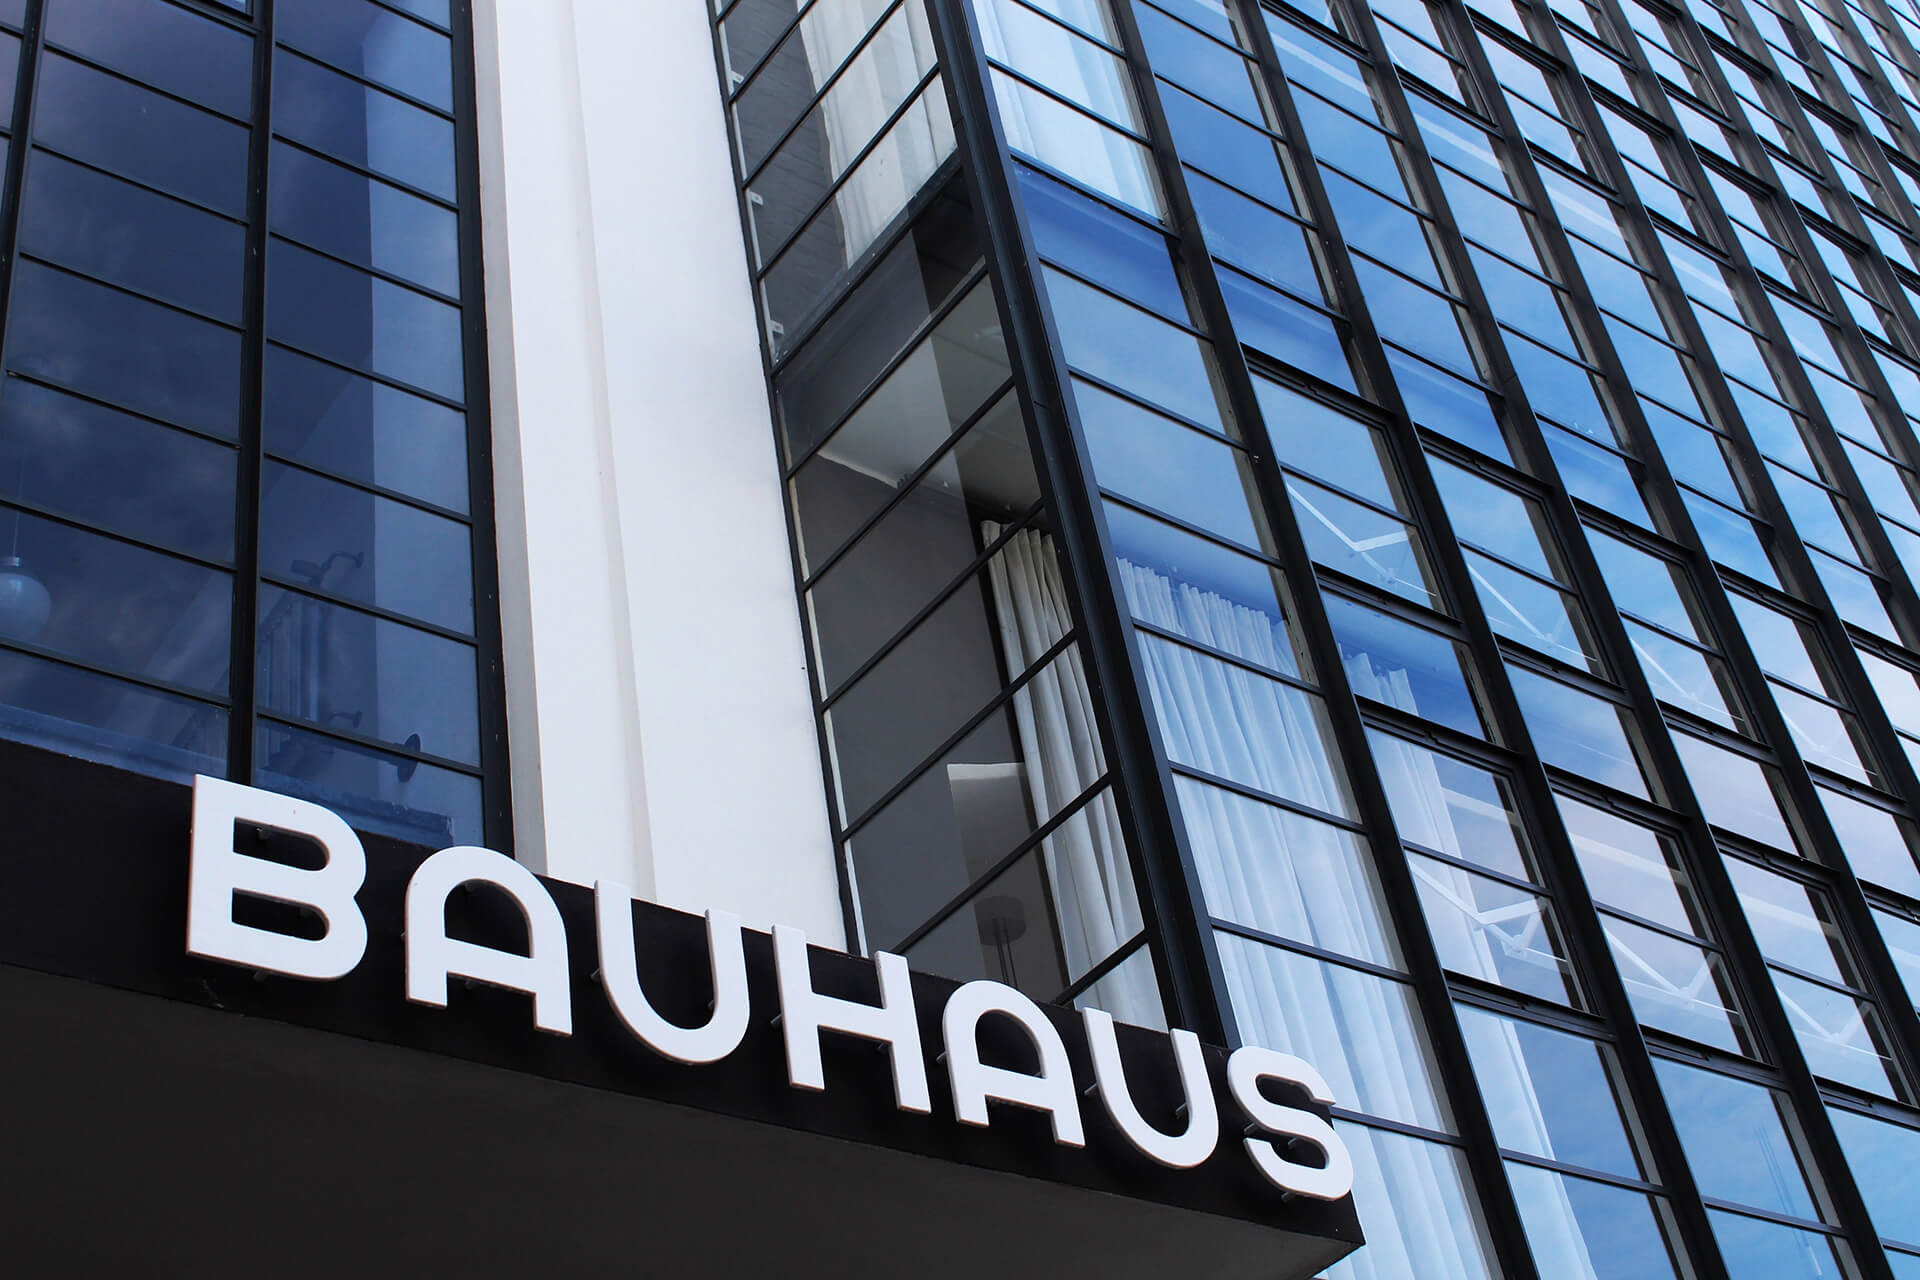 The iconic Bauhaus typography on the entrance to the building in Dessau, a UNESCO world heritage site | European Bauhaus | European Commission | STIRworld